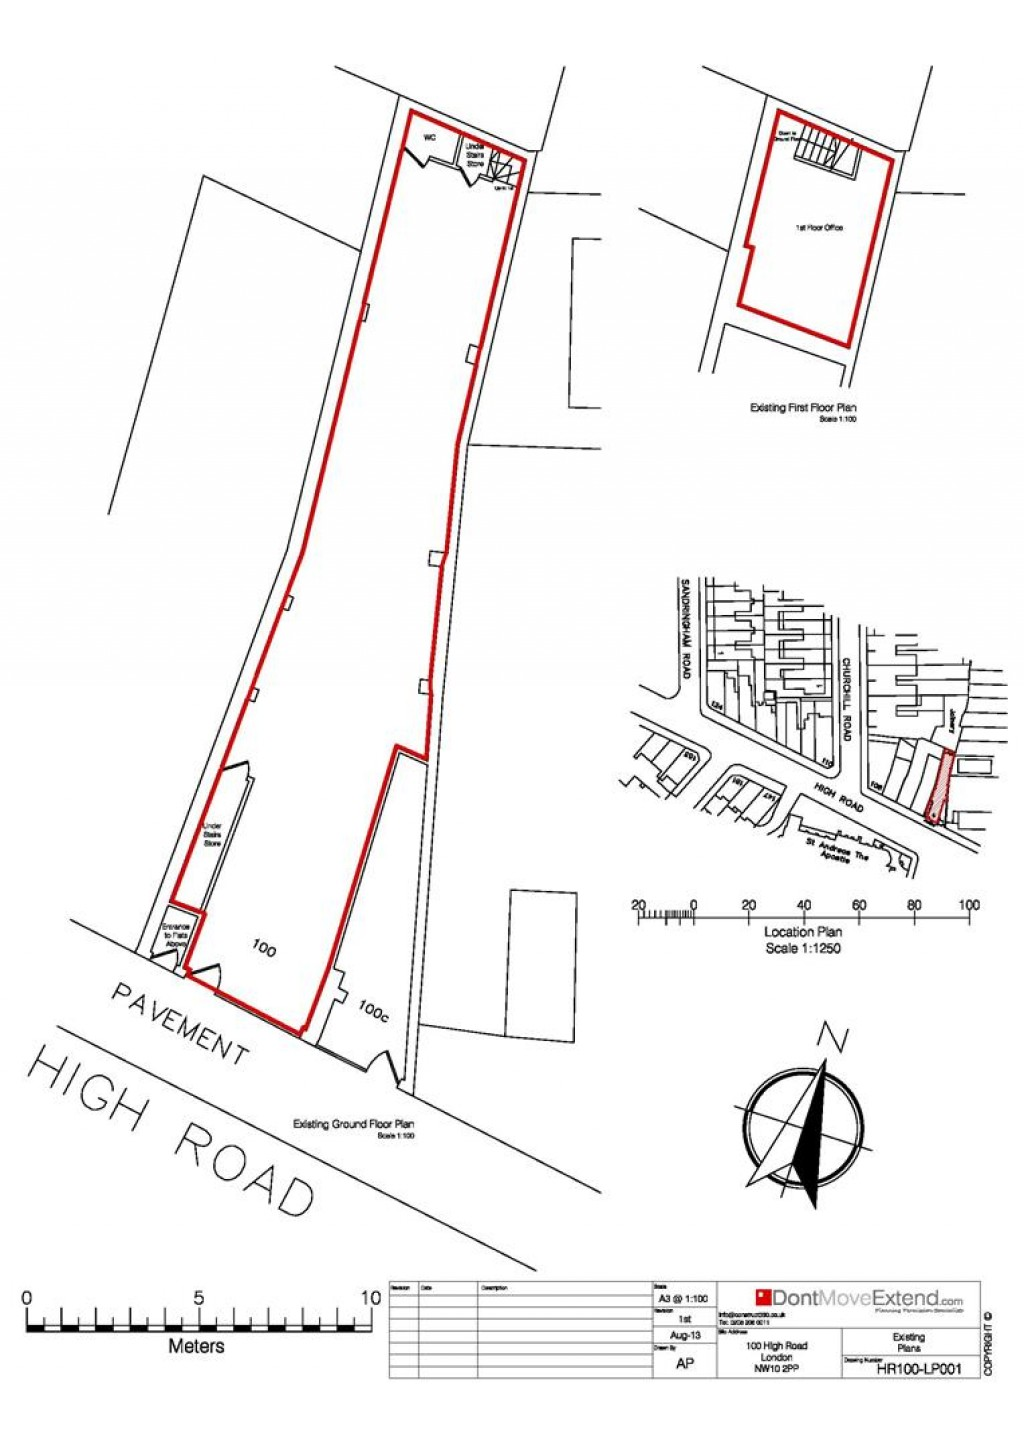 Floorplans For High Road, Willesdon, NW10